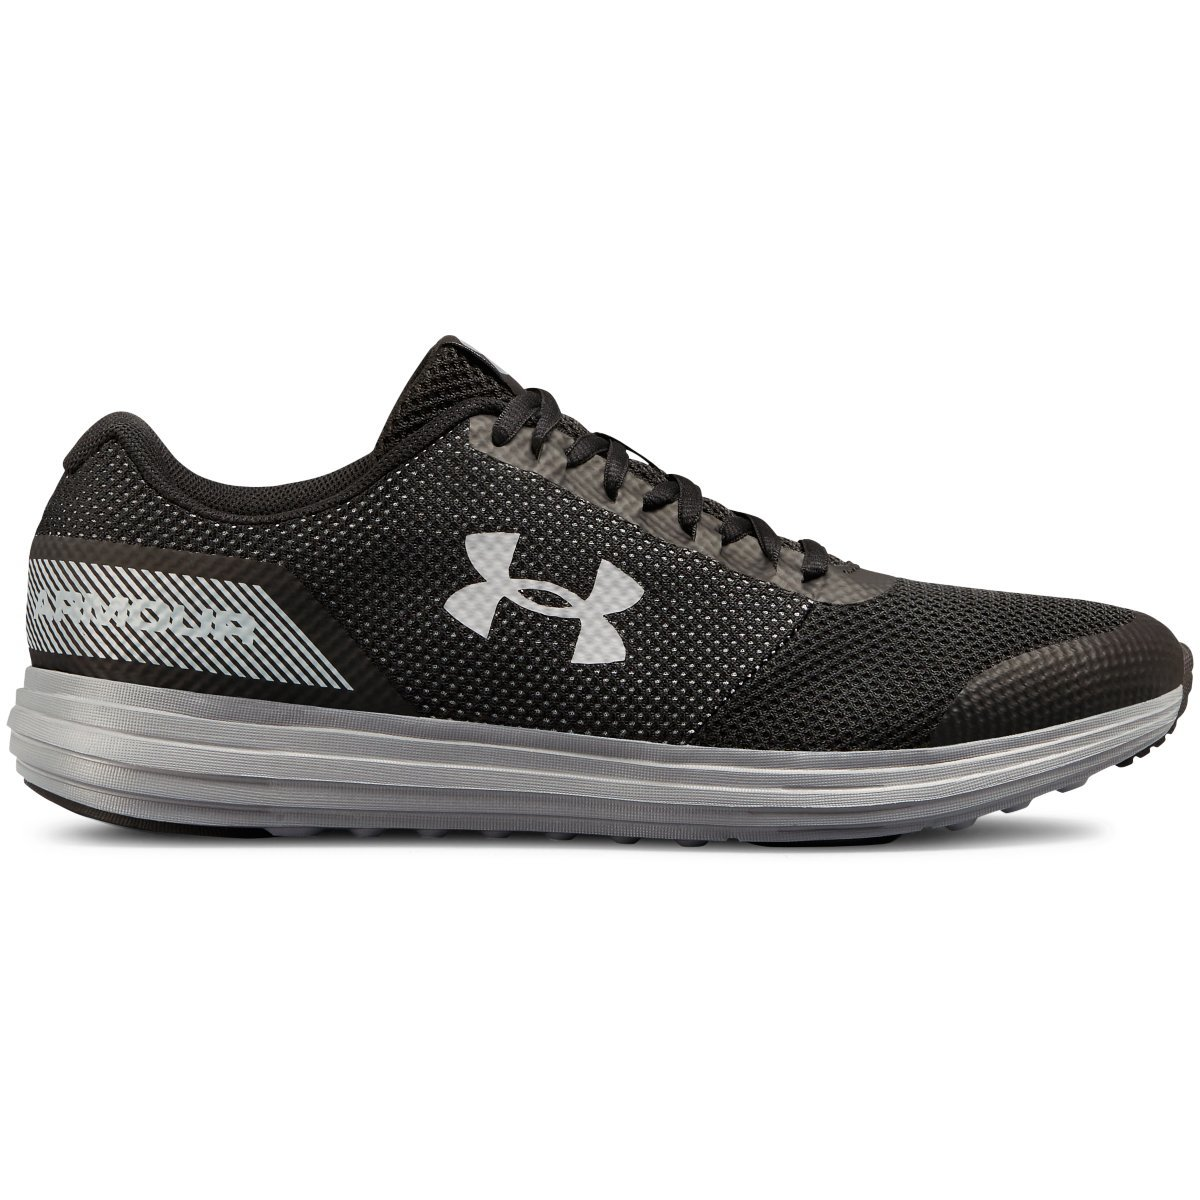 Under Armour Men's Ua Surge Running Shoes - White, 10